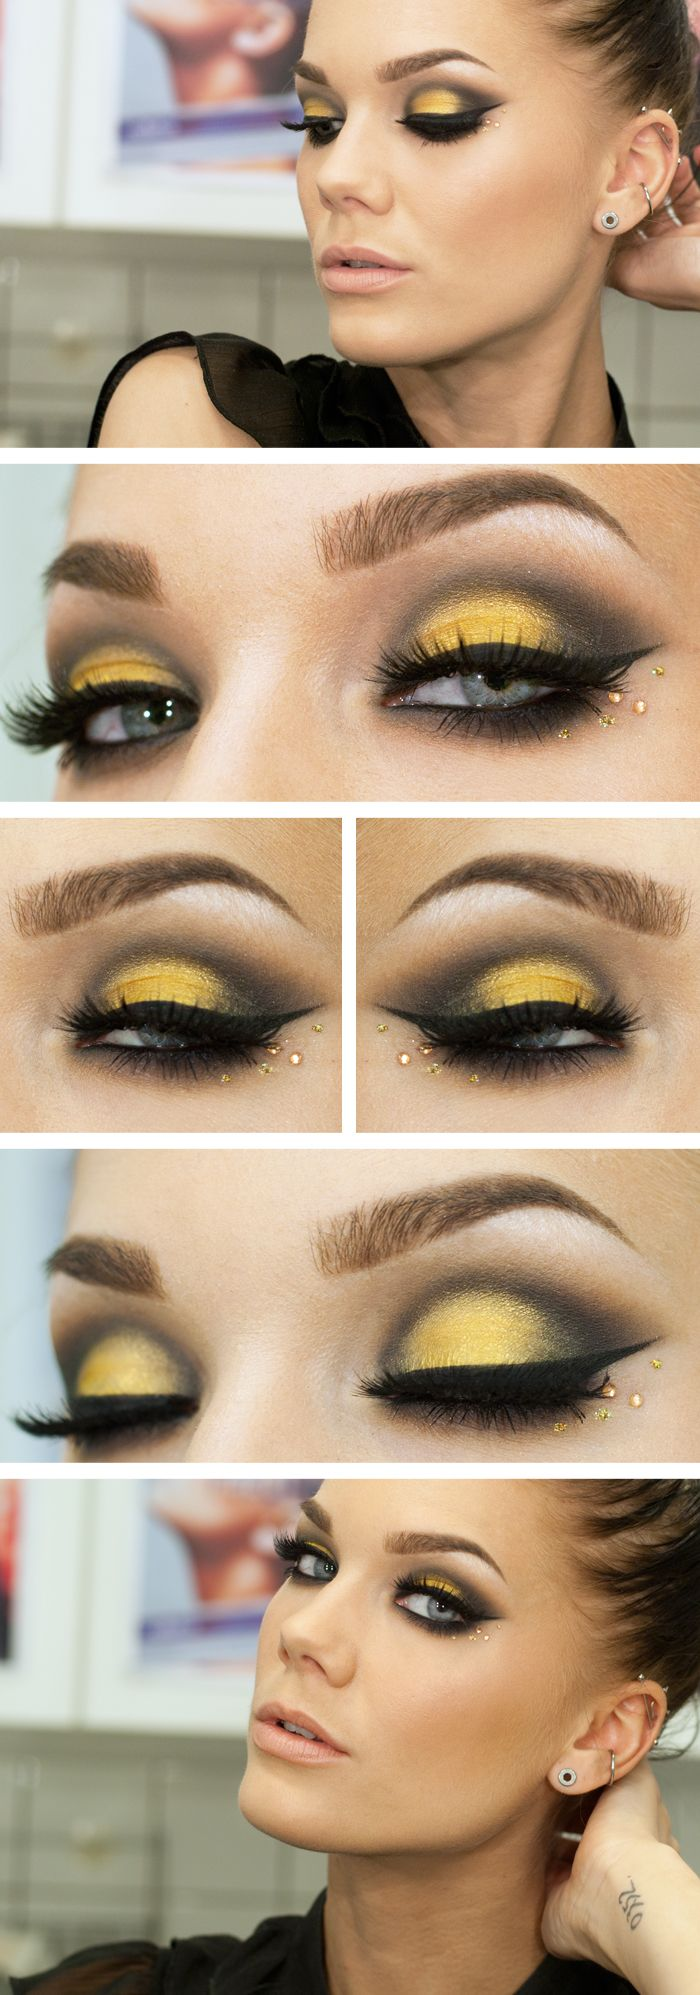 11 Everyday Makeup Tutorials And Ideas For Women - Pretty Designs-7537